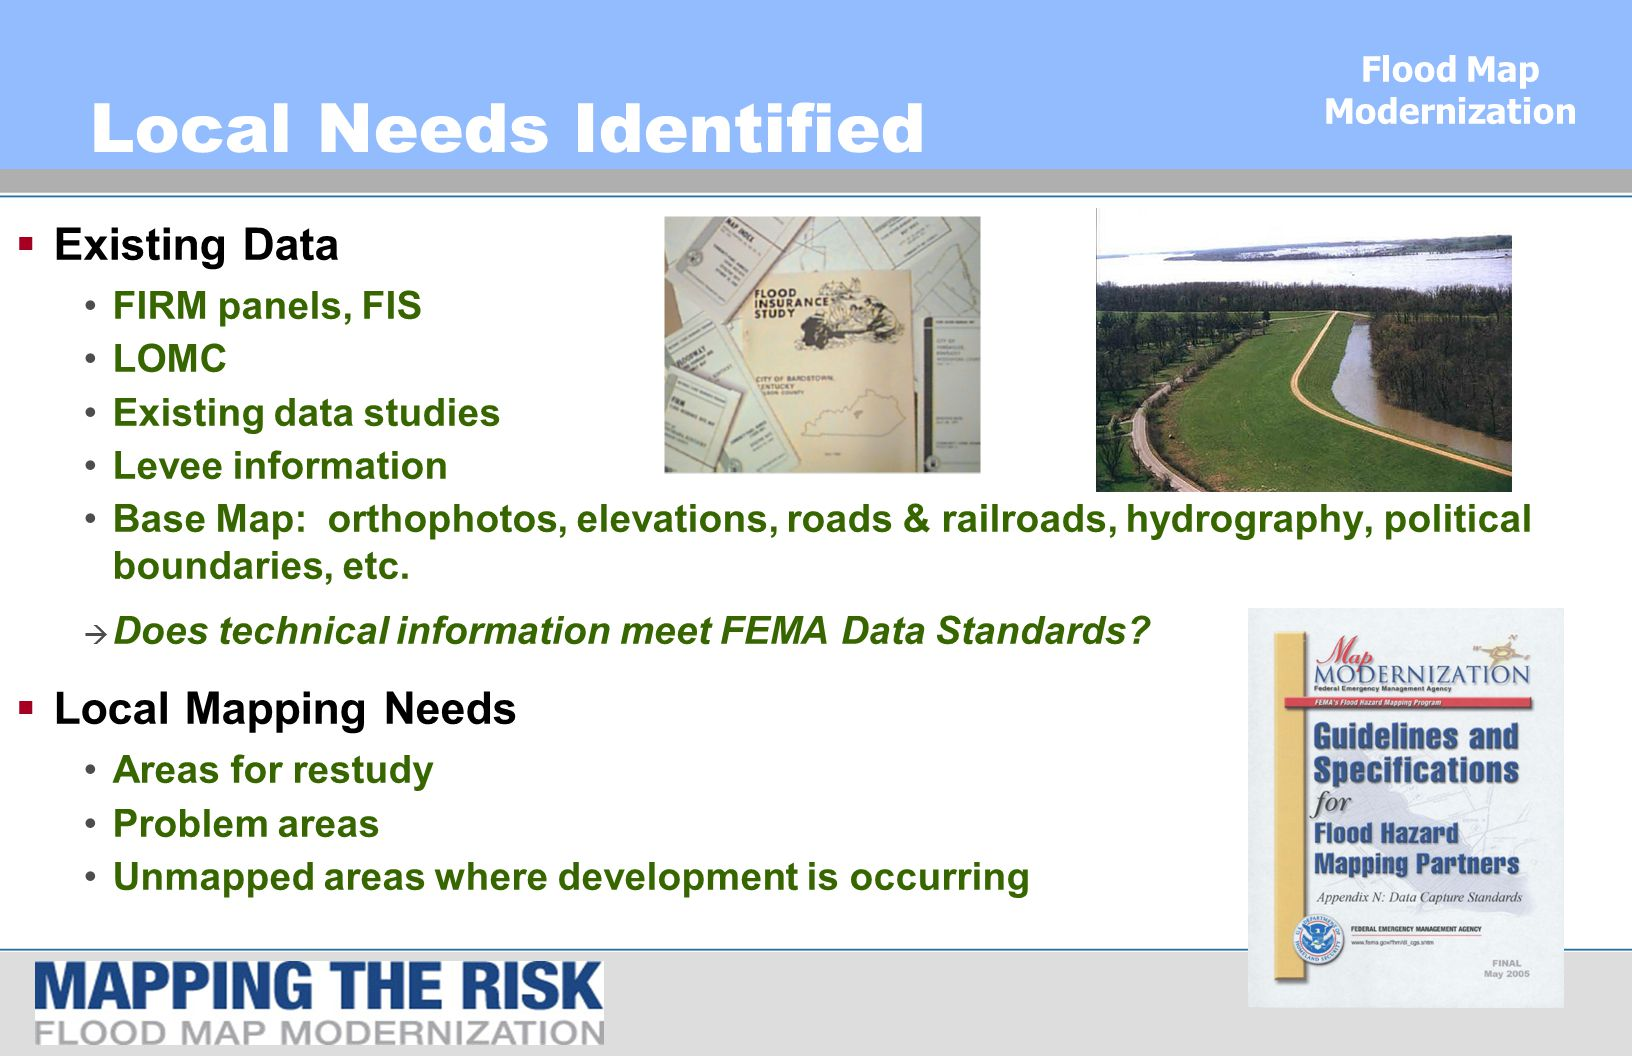 Flood Map Modernization Local Needs Identified  Existing Data FIRM panels, FIS LOMC Existing data studies Levee information Base Map: orthophotos, elevations, roads & railroads, hydrography, political boundaries, etc.